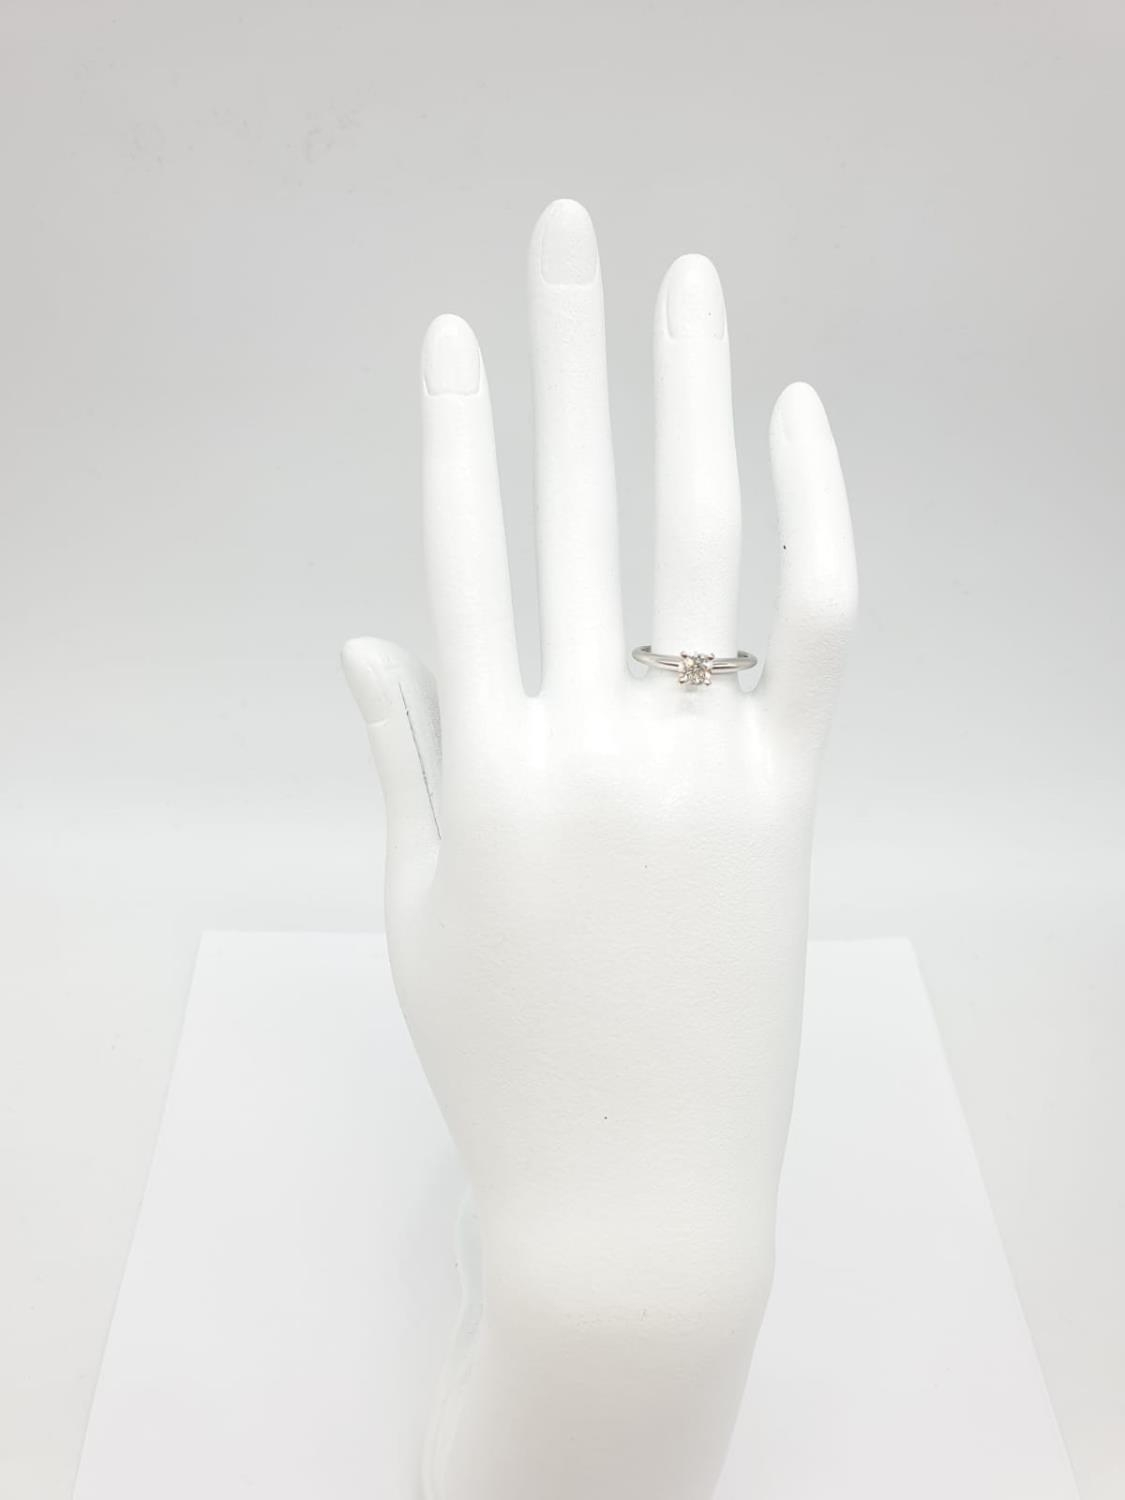 14ct white gold with 0.56ct diamond solitaire ring (round brilliant cut, colour H, clarity SI1 - Image 5 of 18